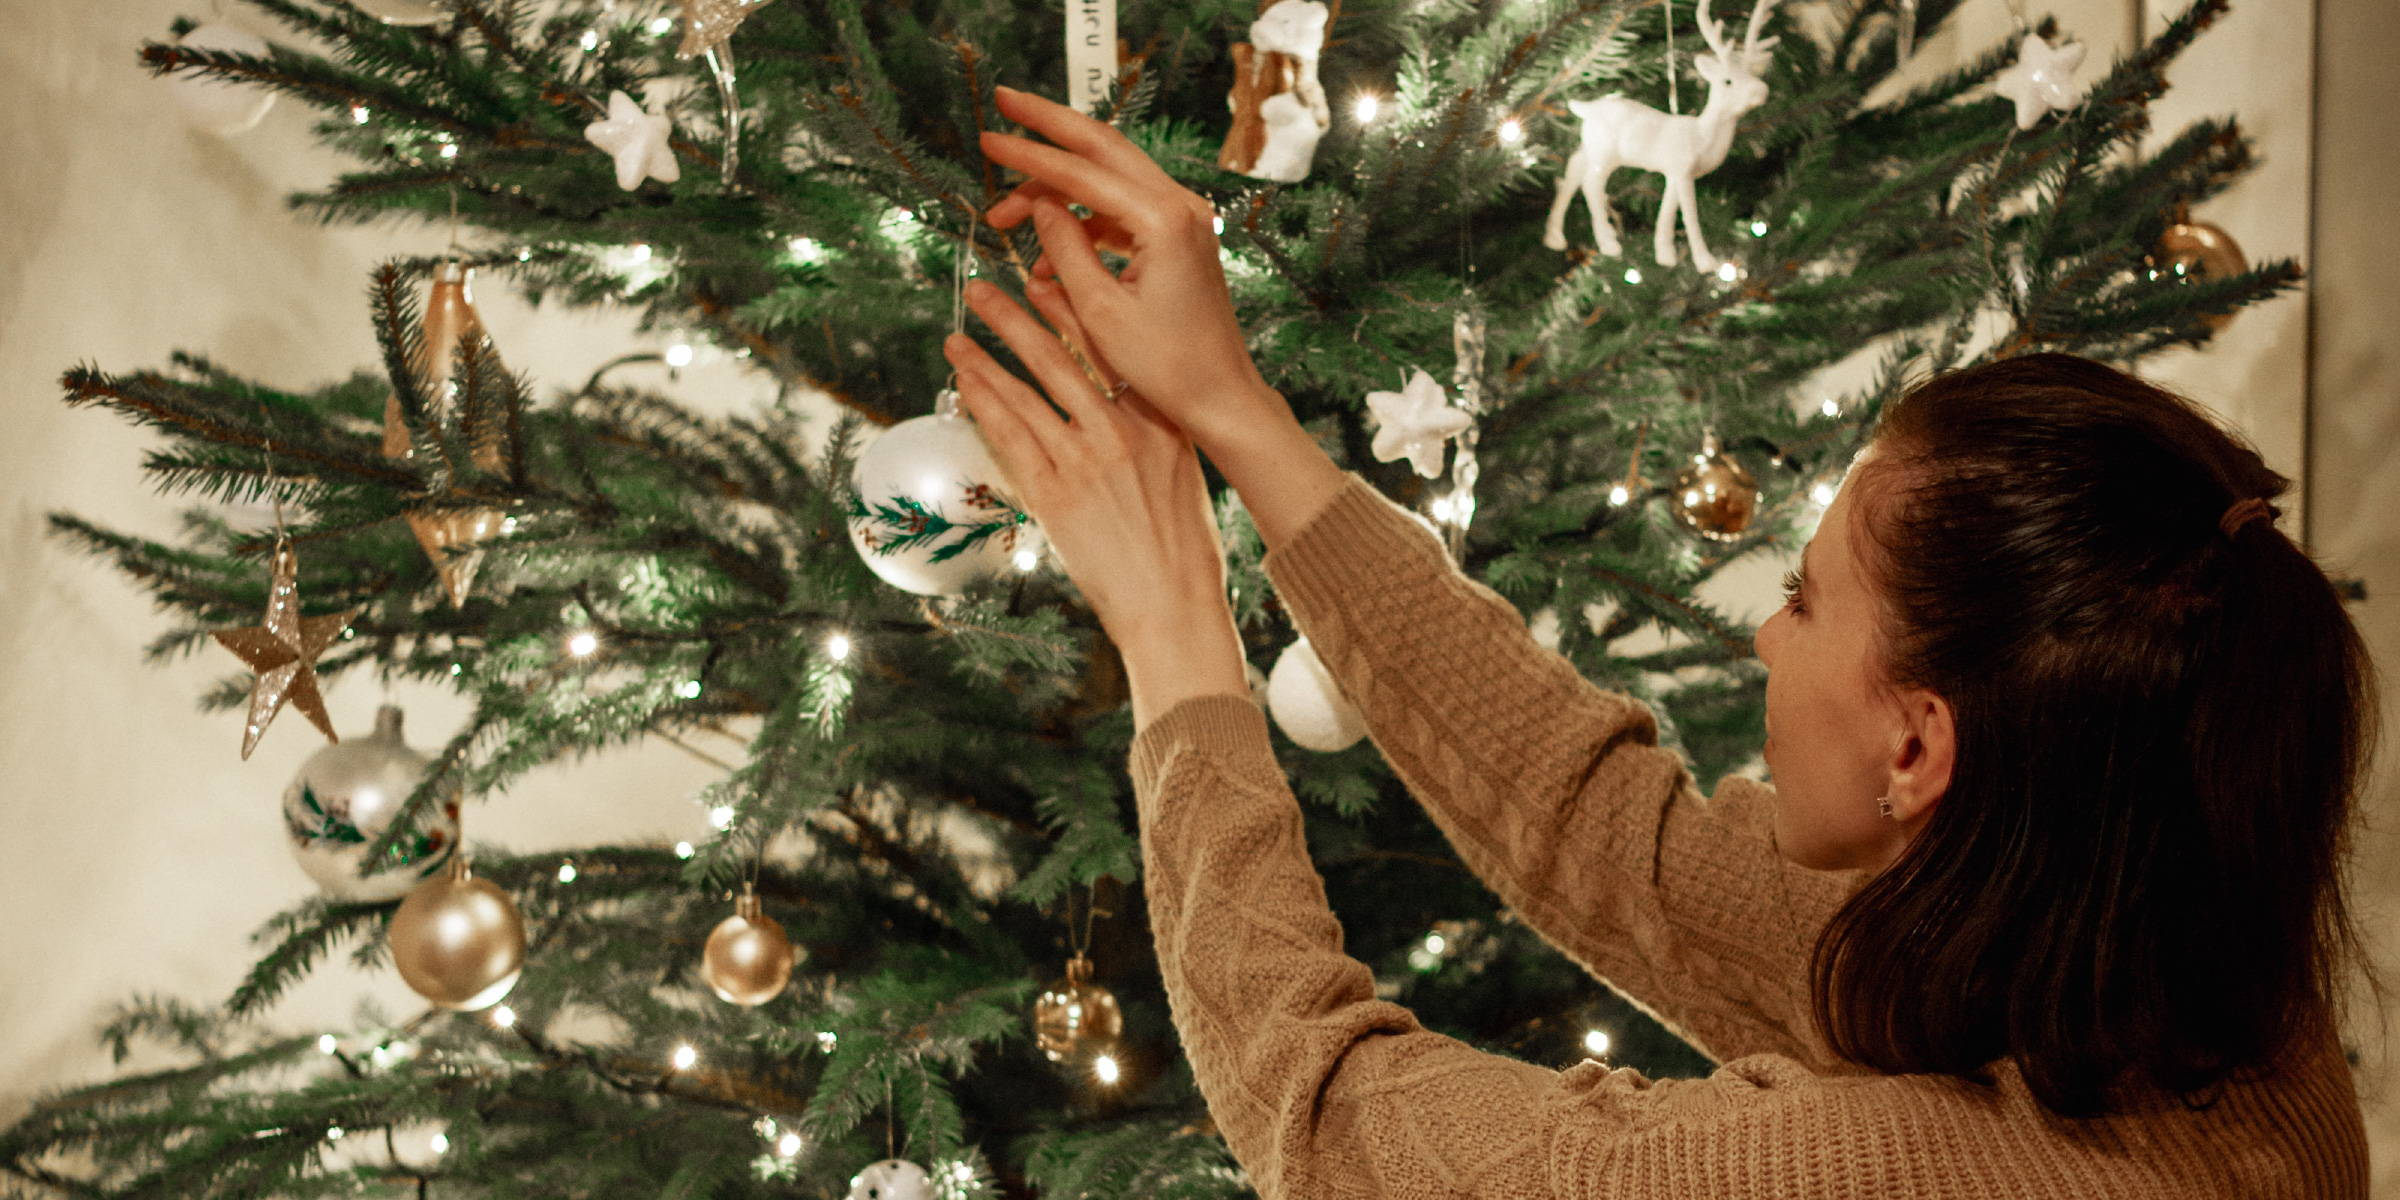 Woman decorating a Christmas tree surrounded by her friends and family paired perfectly with Kiss of Wine canned wine.